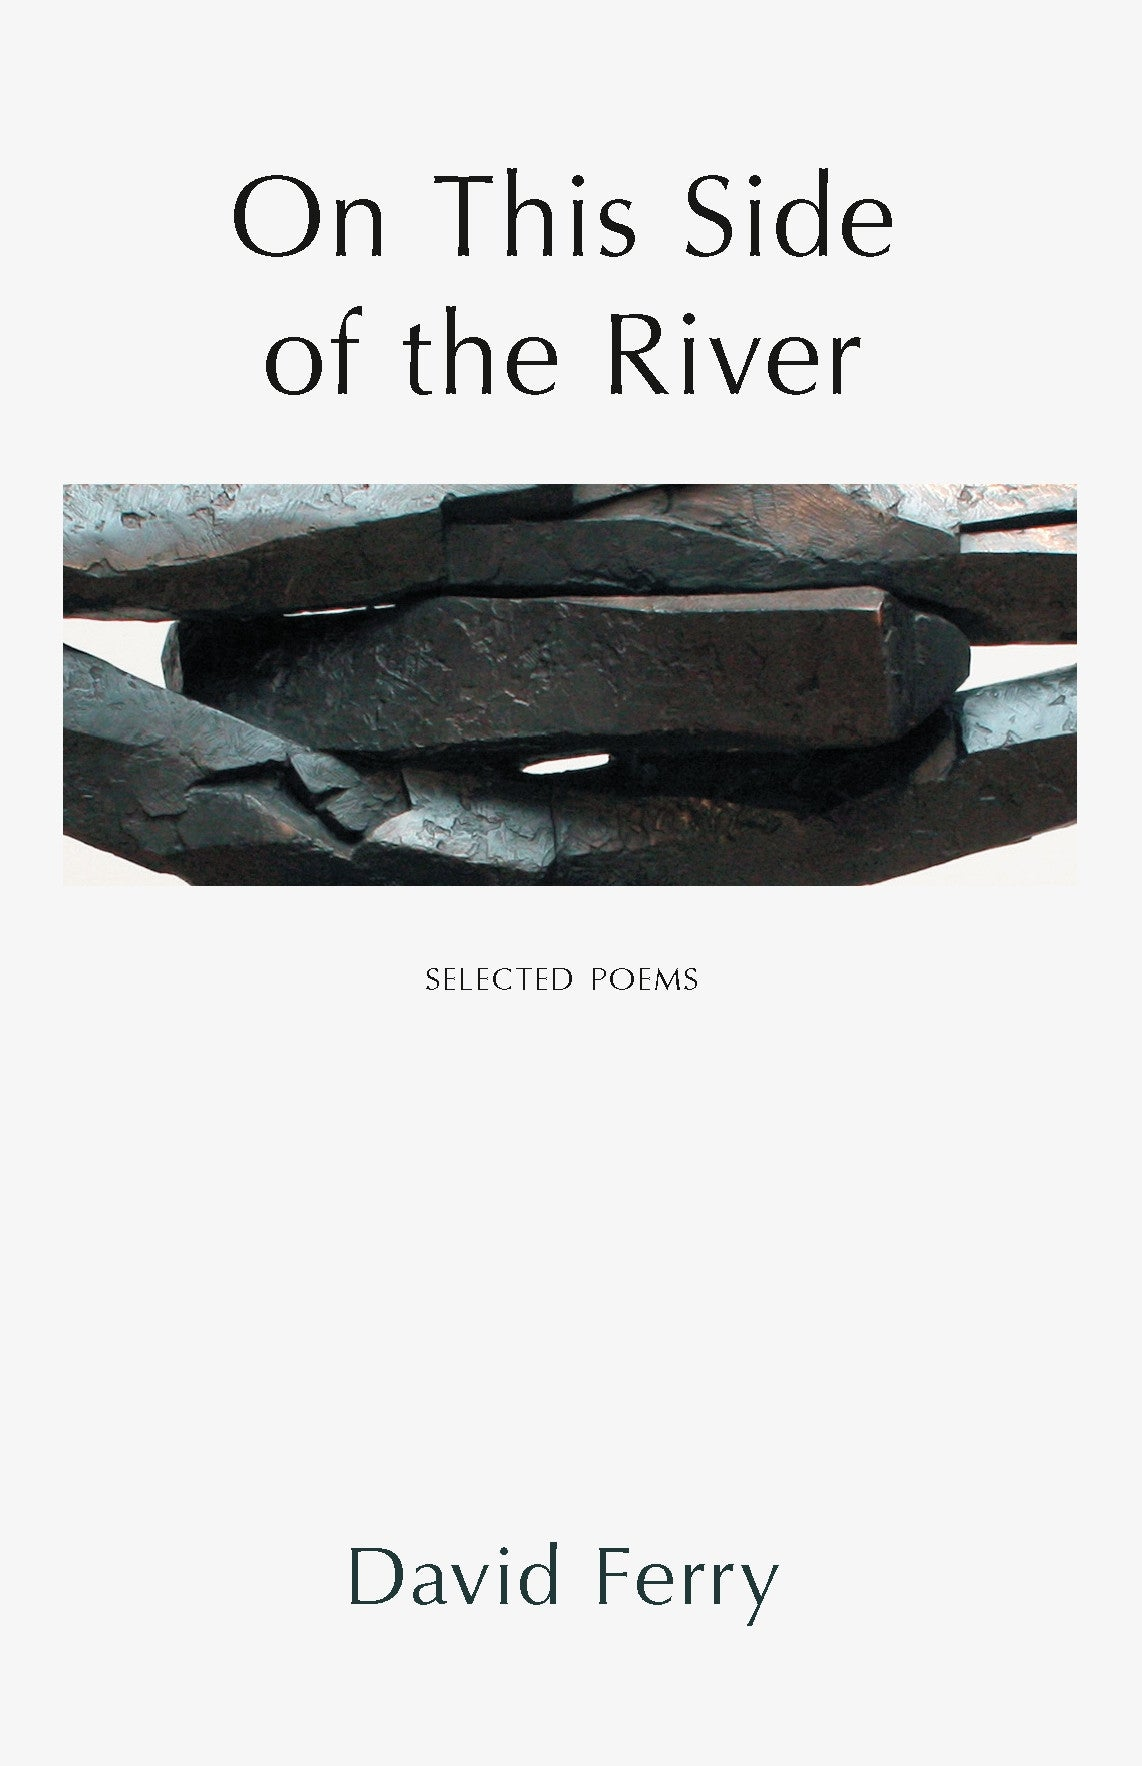 On This Side of the River: Selected Poems